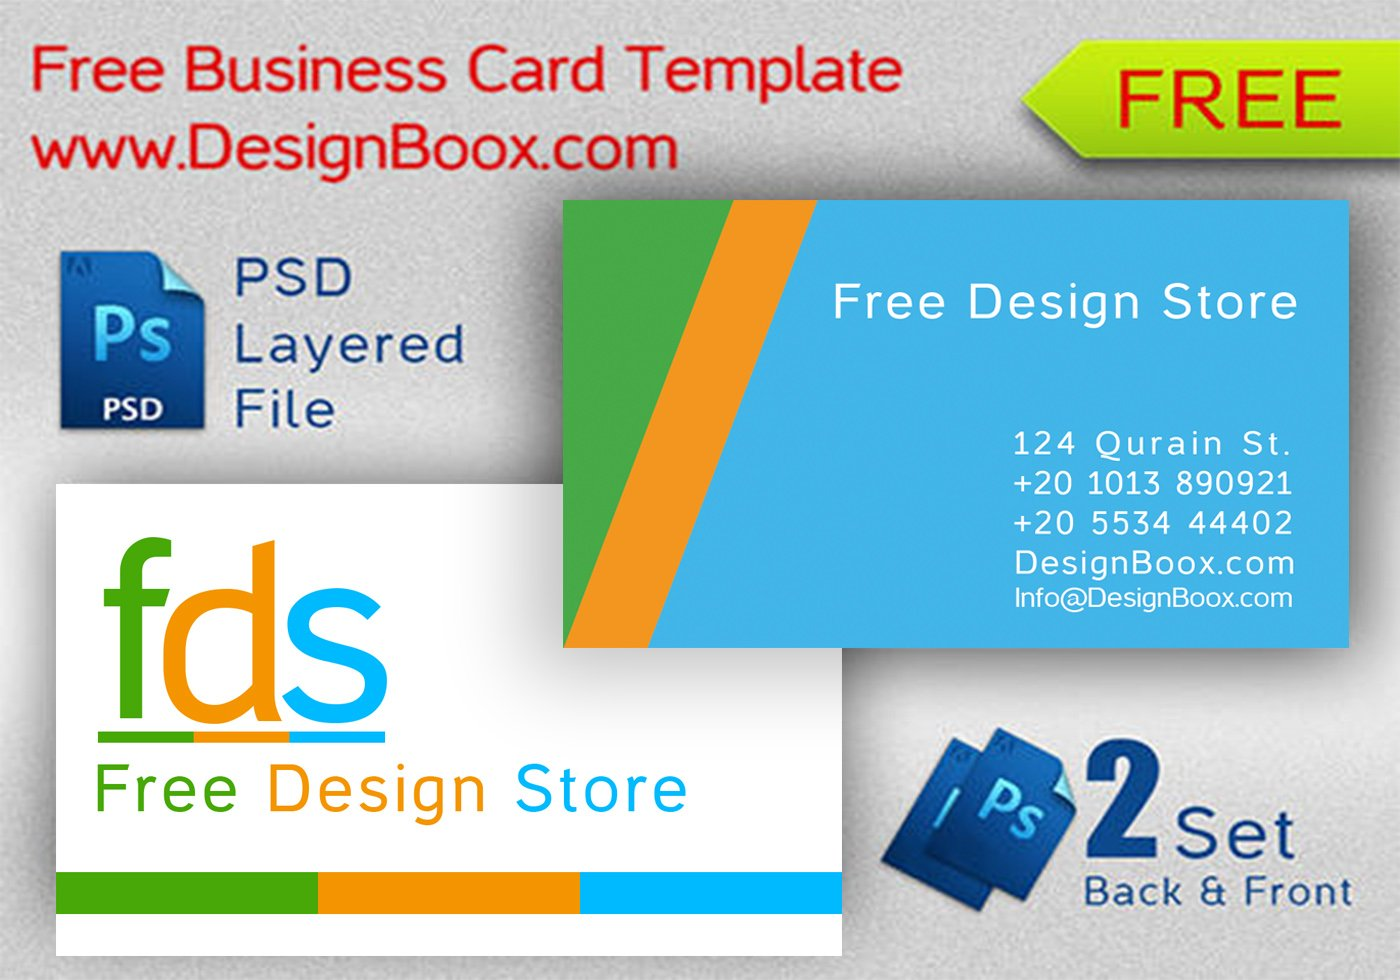 business card template free photoshop psds at brusheezy. Black Bedroom Furniture Sets. Home Design Ideas